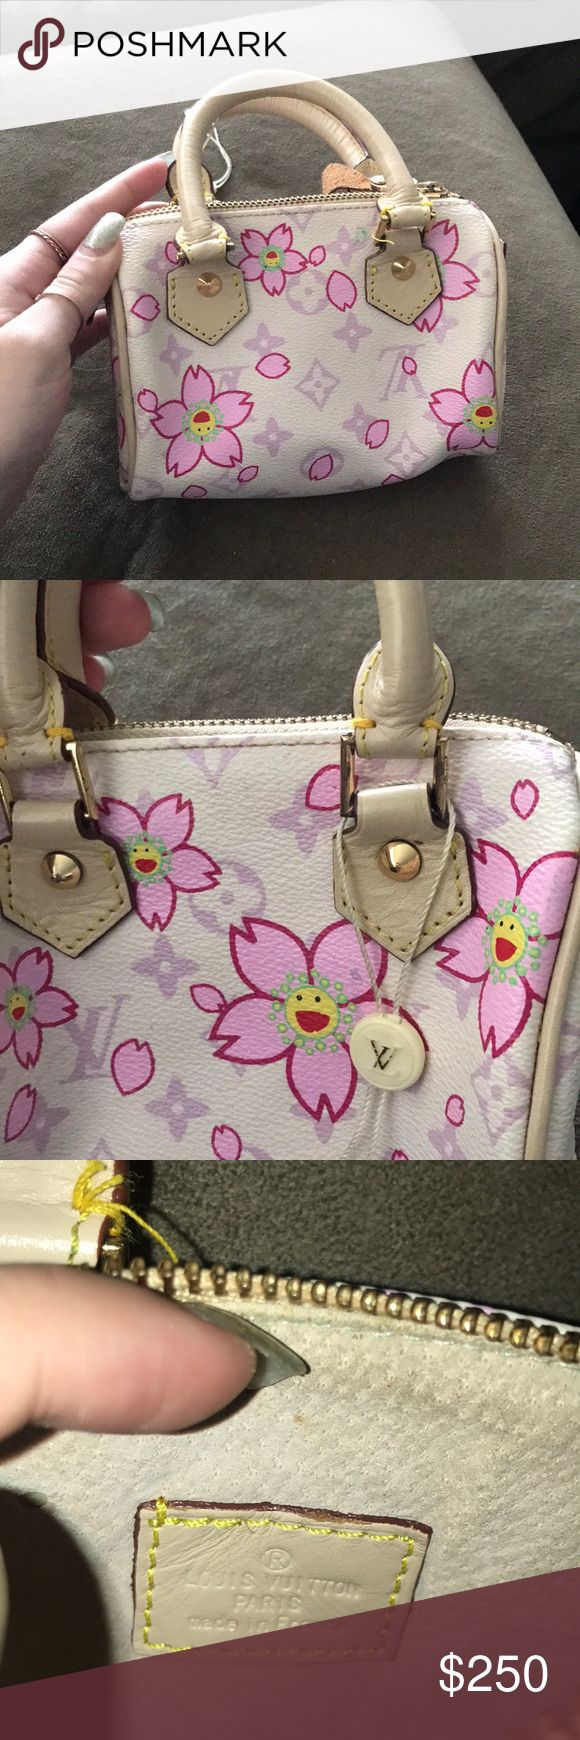 Small Louis Vuitton handbag Cherry Blossom collection 2003 discontinued, so bag is limited edition!! Never used, authenticity tag still attached. Slight fold in leather flap on one side from being stored, otherwise in perfect condition Louis Vuitton Bags Mini Bags